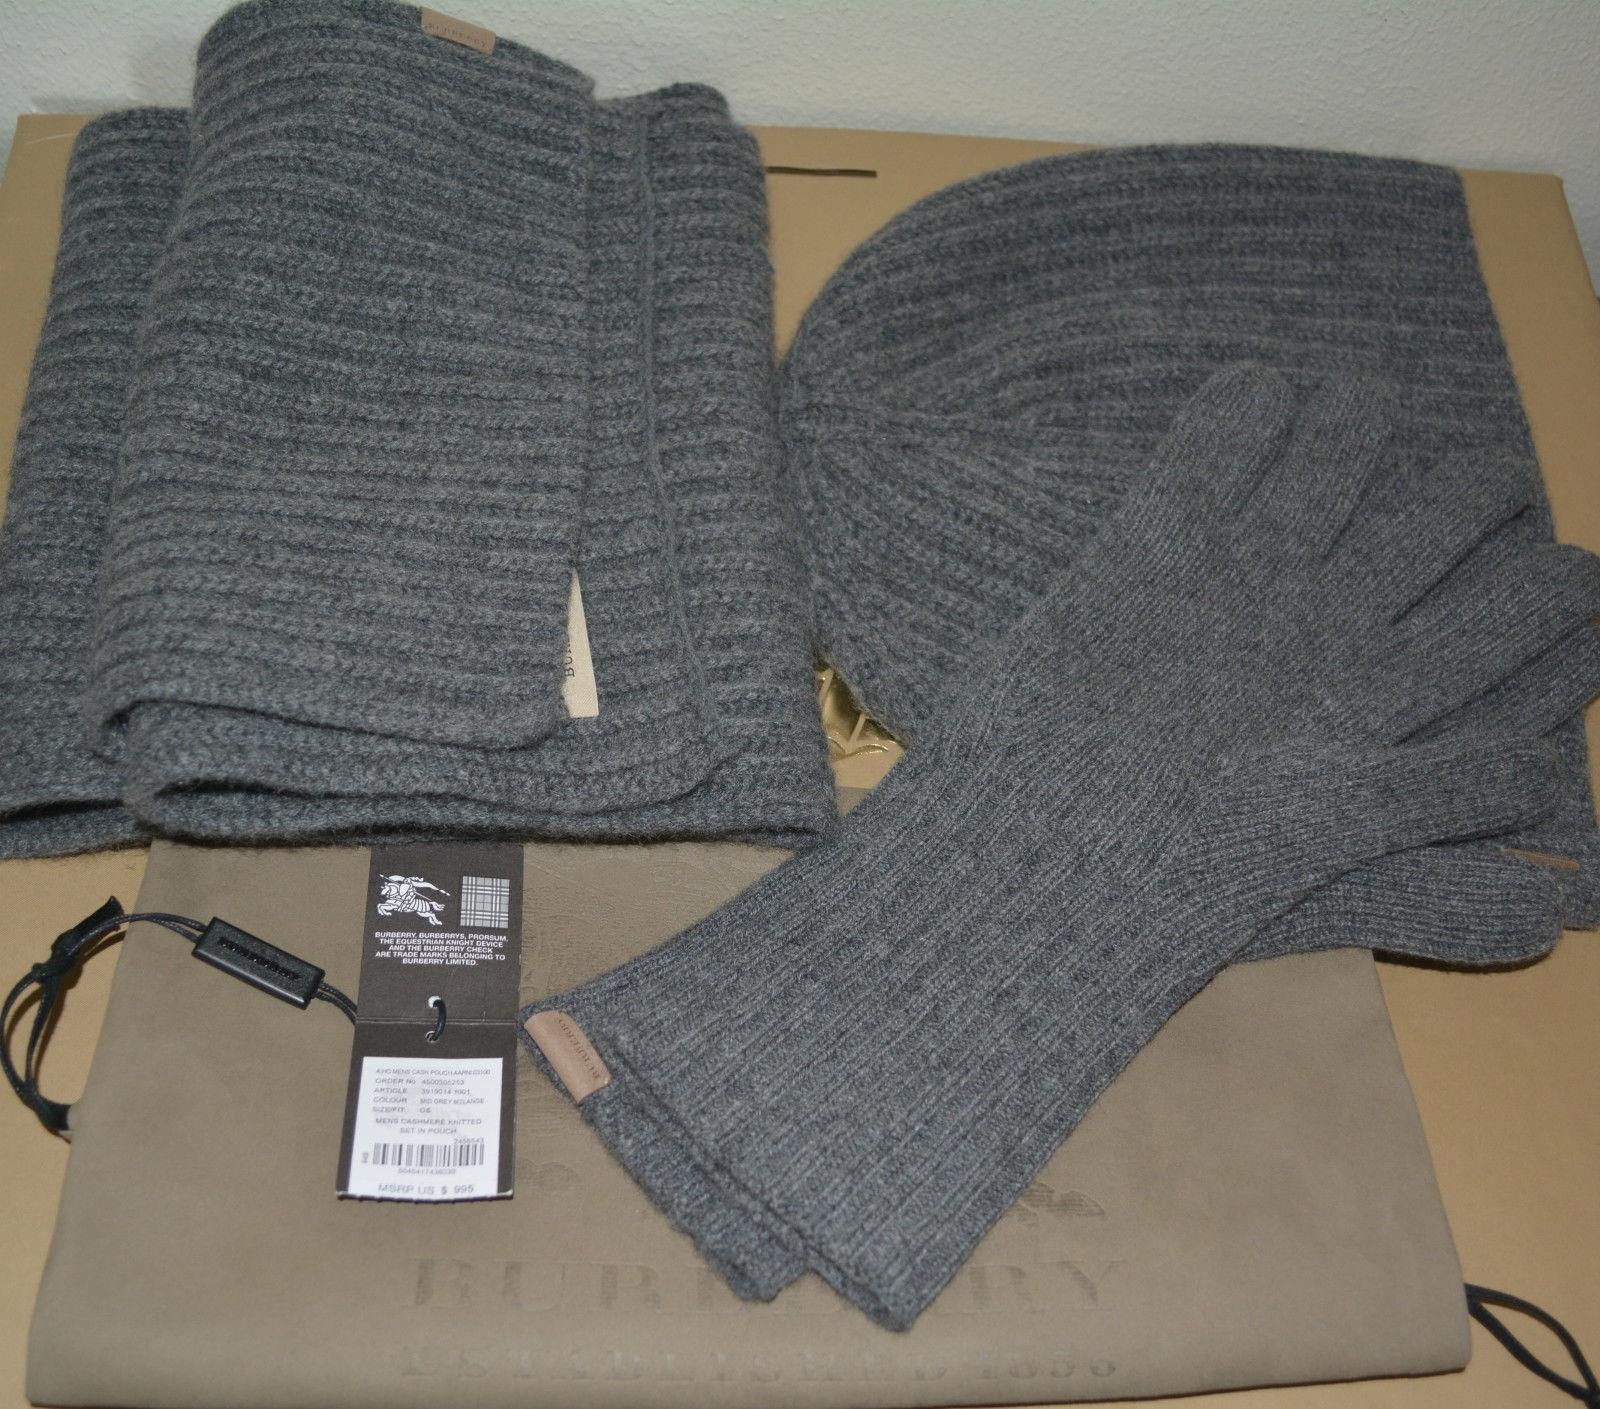 ... discount code for burberry grey cashmere gloves set in pouch scarf wrap  tradesy 4fc01 35182 ... 9146f7bd670